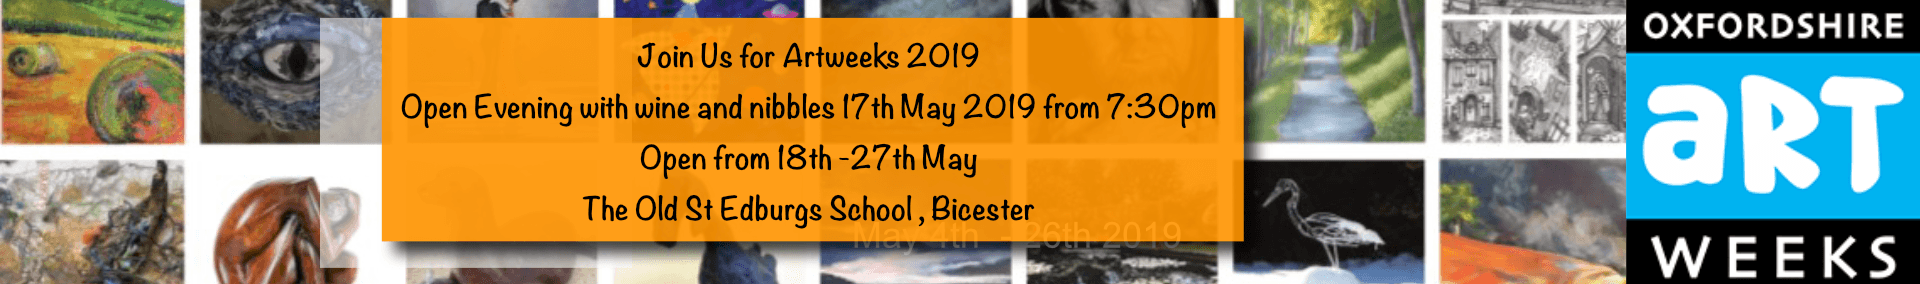 Artweeks 201 - Visit our Exhibition in 2019